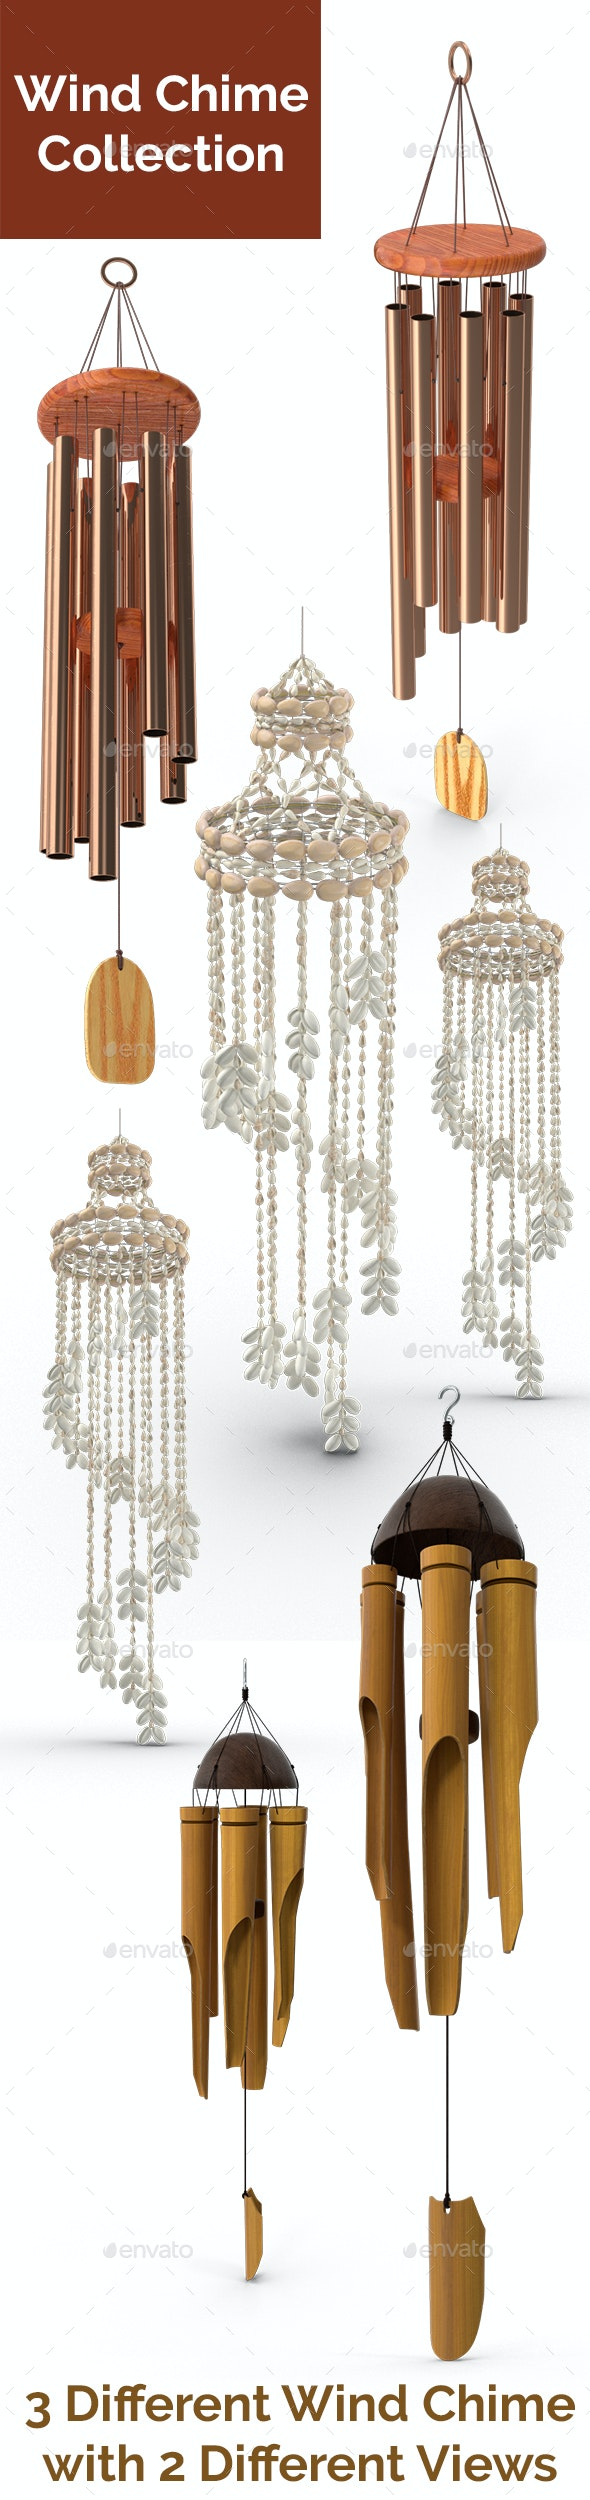 3d Rendered Wind Chime Collection - 3D Backgrounds